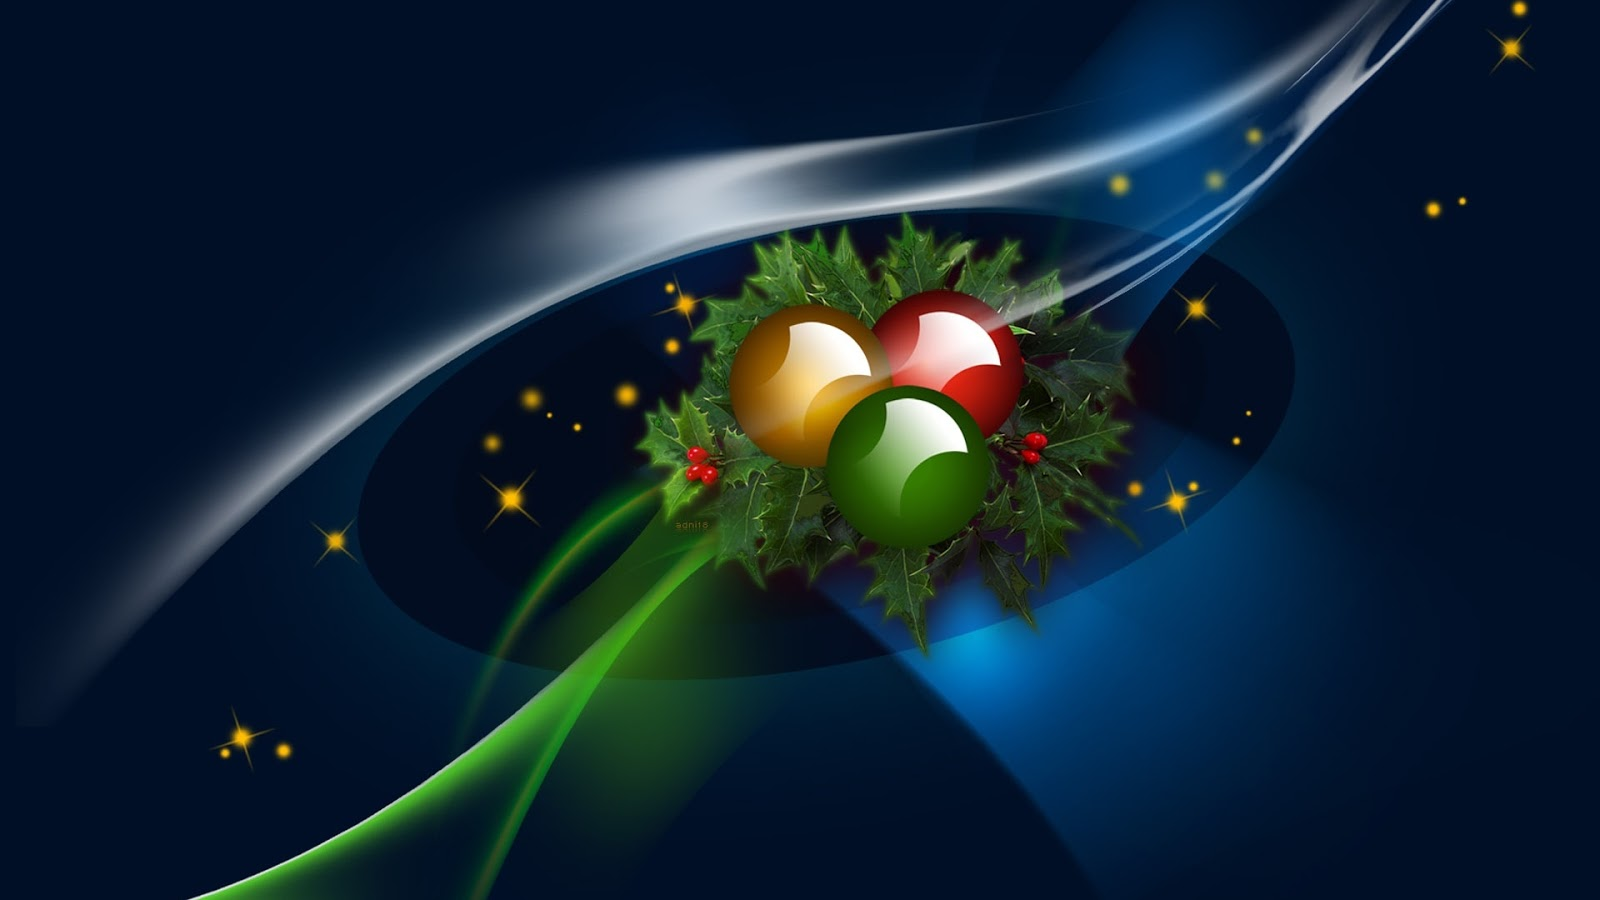 Christmas Tree Pictures High Resolution : Wallpaper christmas high resolution